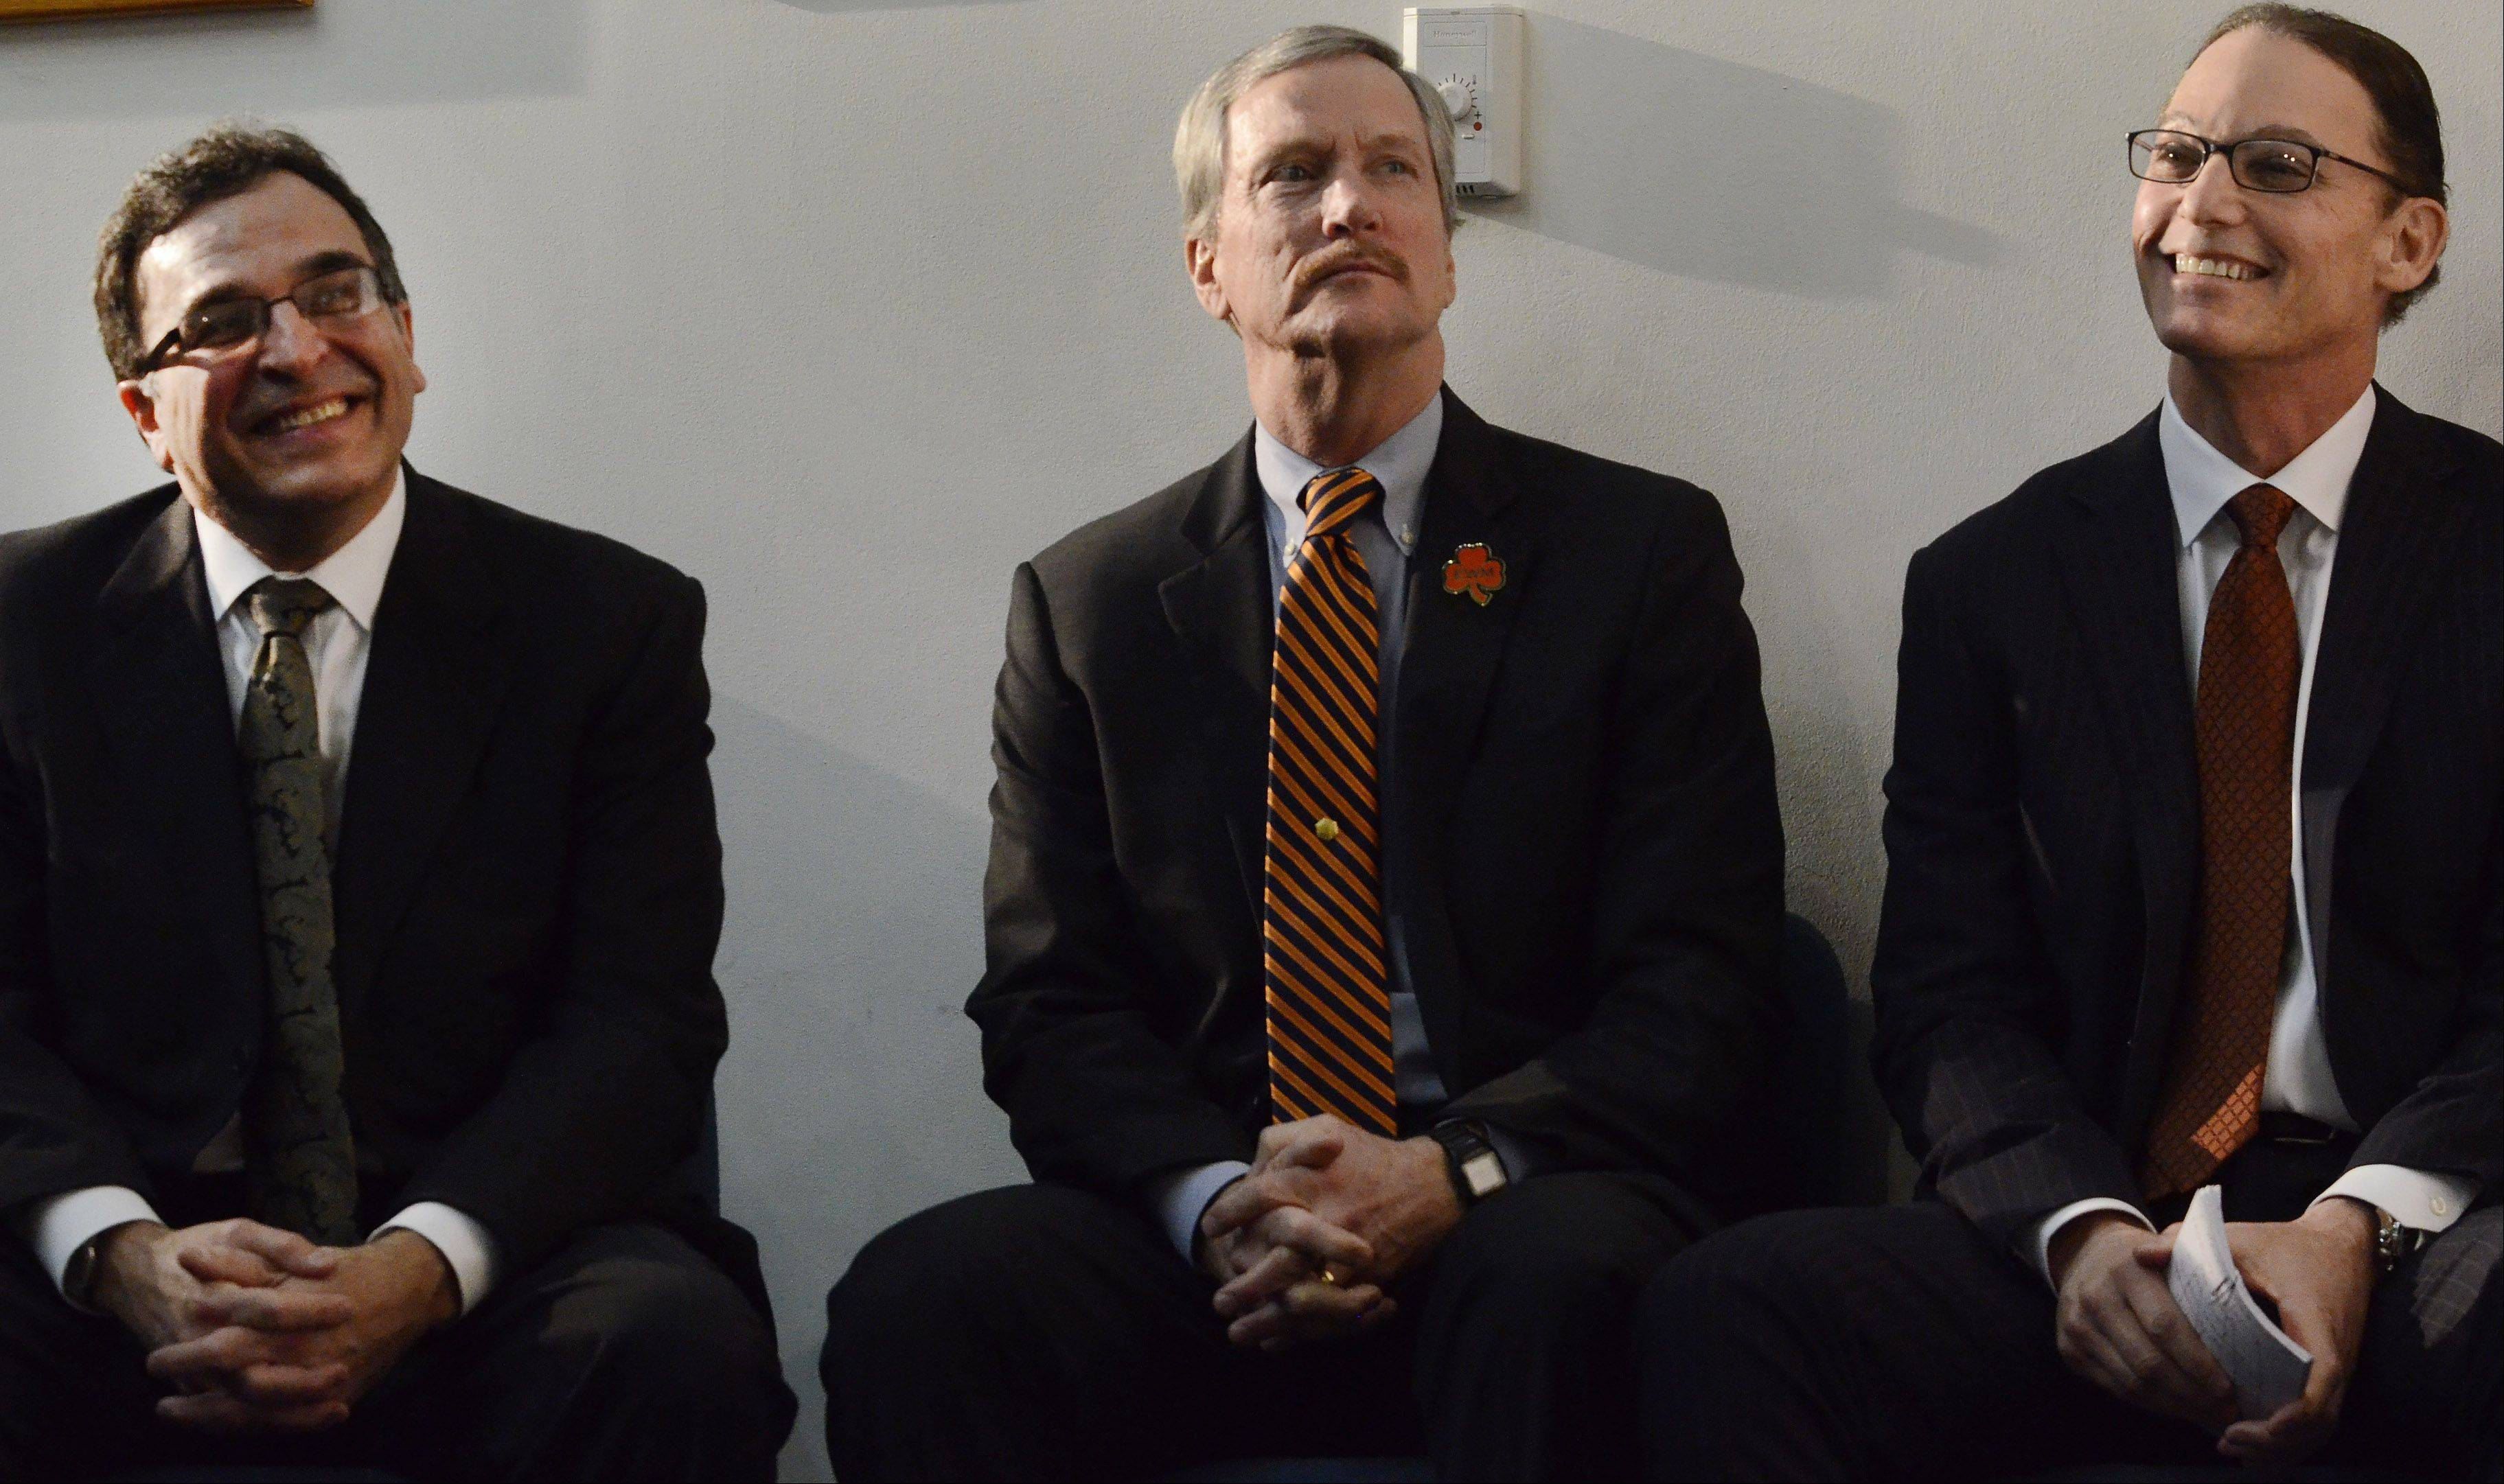 Ted Phillips, George McCaskey and Marc Trestman, before Trestman is named the 14th head coach of the Chicago Bears.